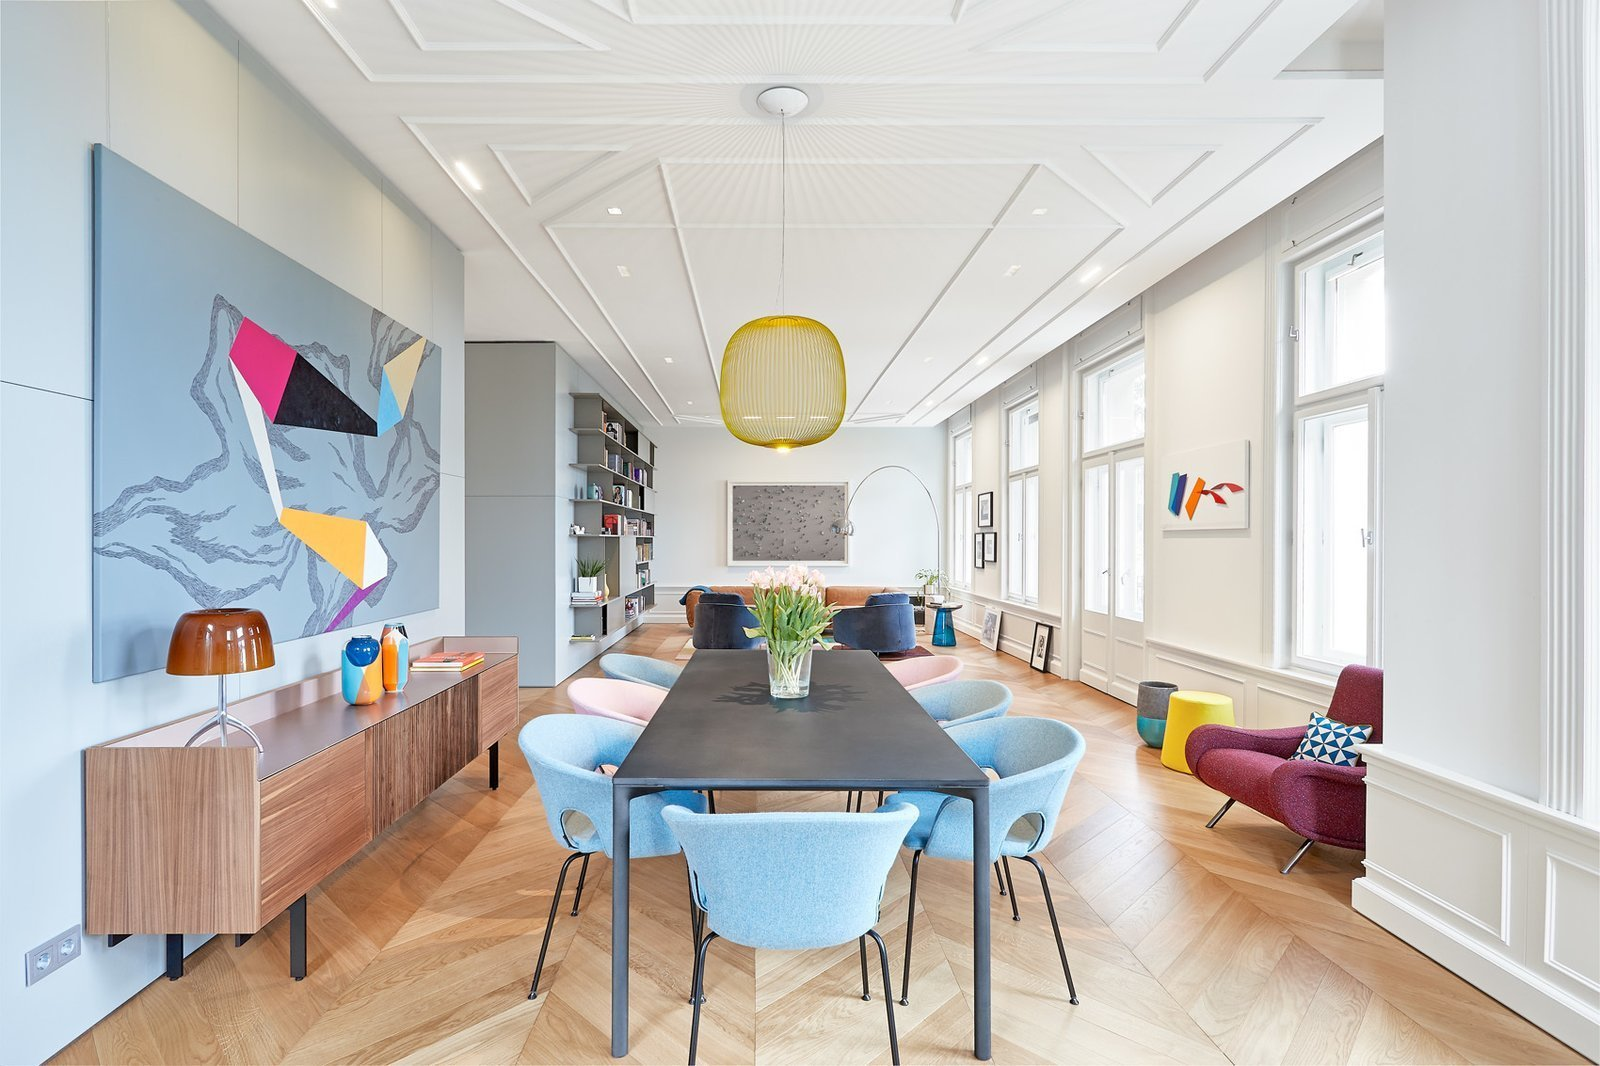 Dining Room, Table, Medium Hardwood Floor, Pendant Lighting, and Chair  Photo 1 of 17 in A Family Villa in Budapest With Colorful, 1960s-Inspired Interiors